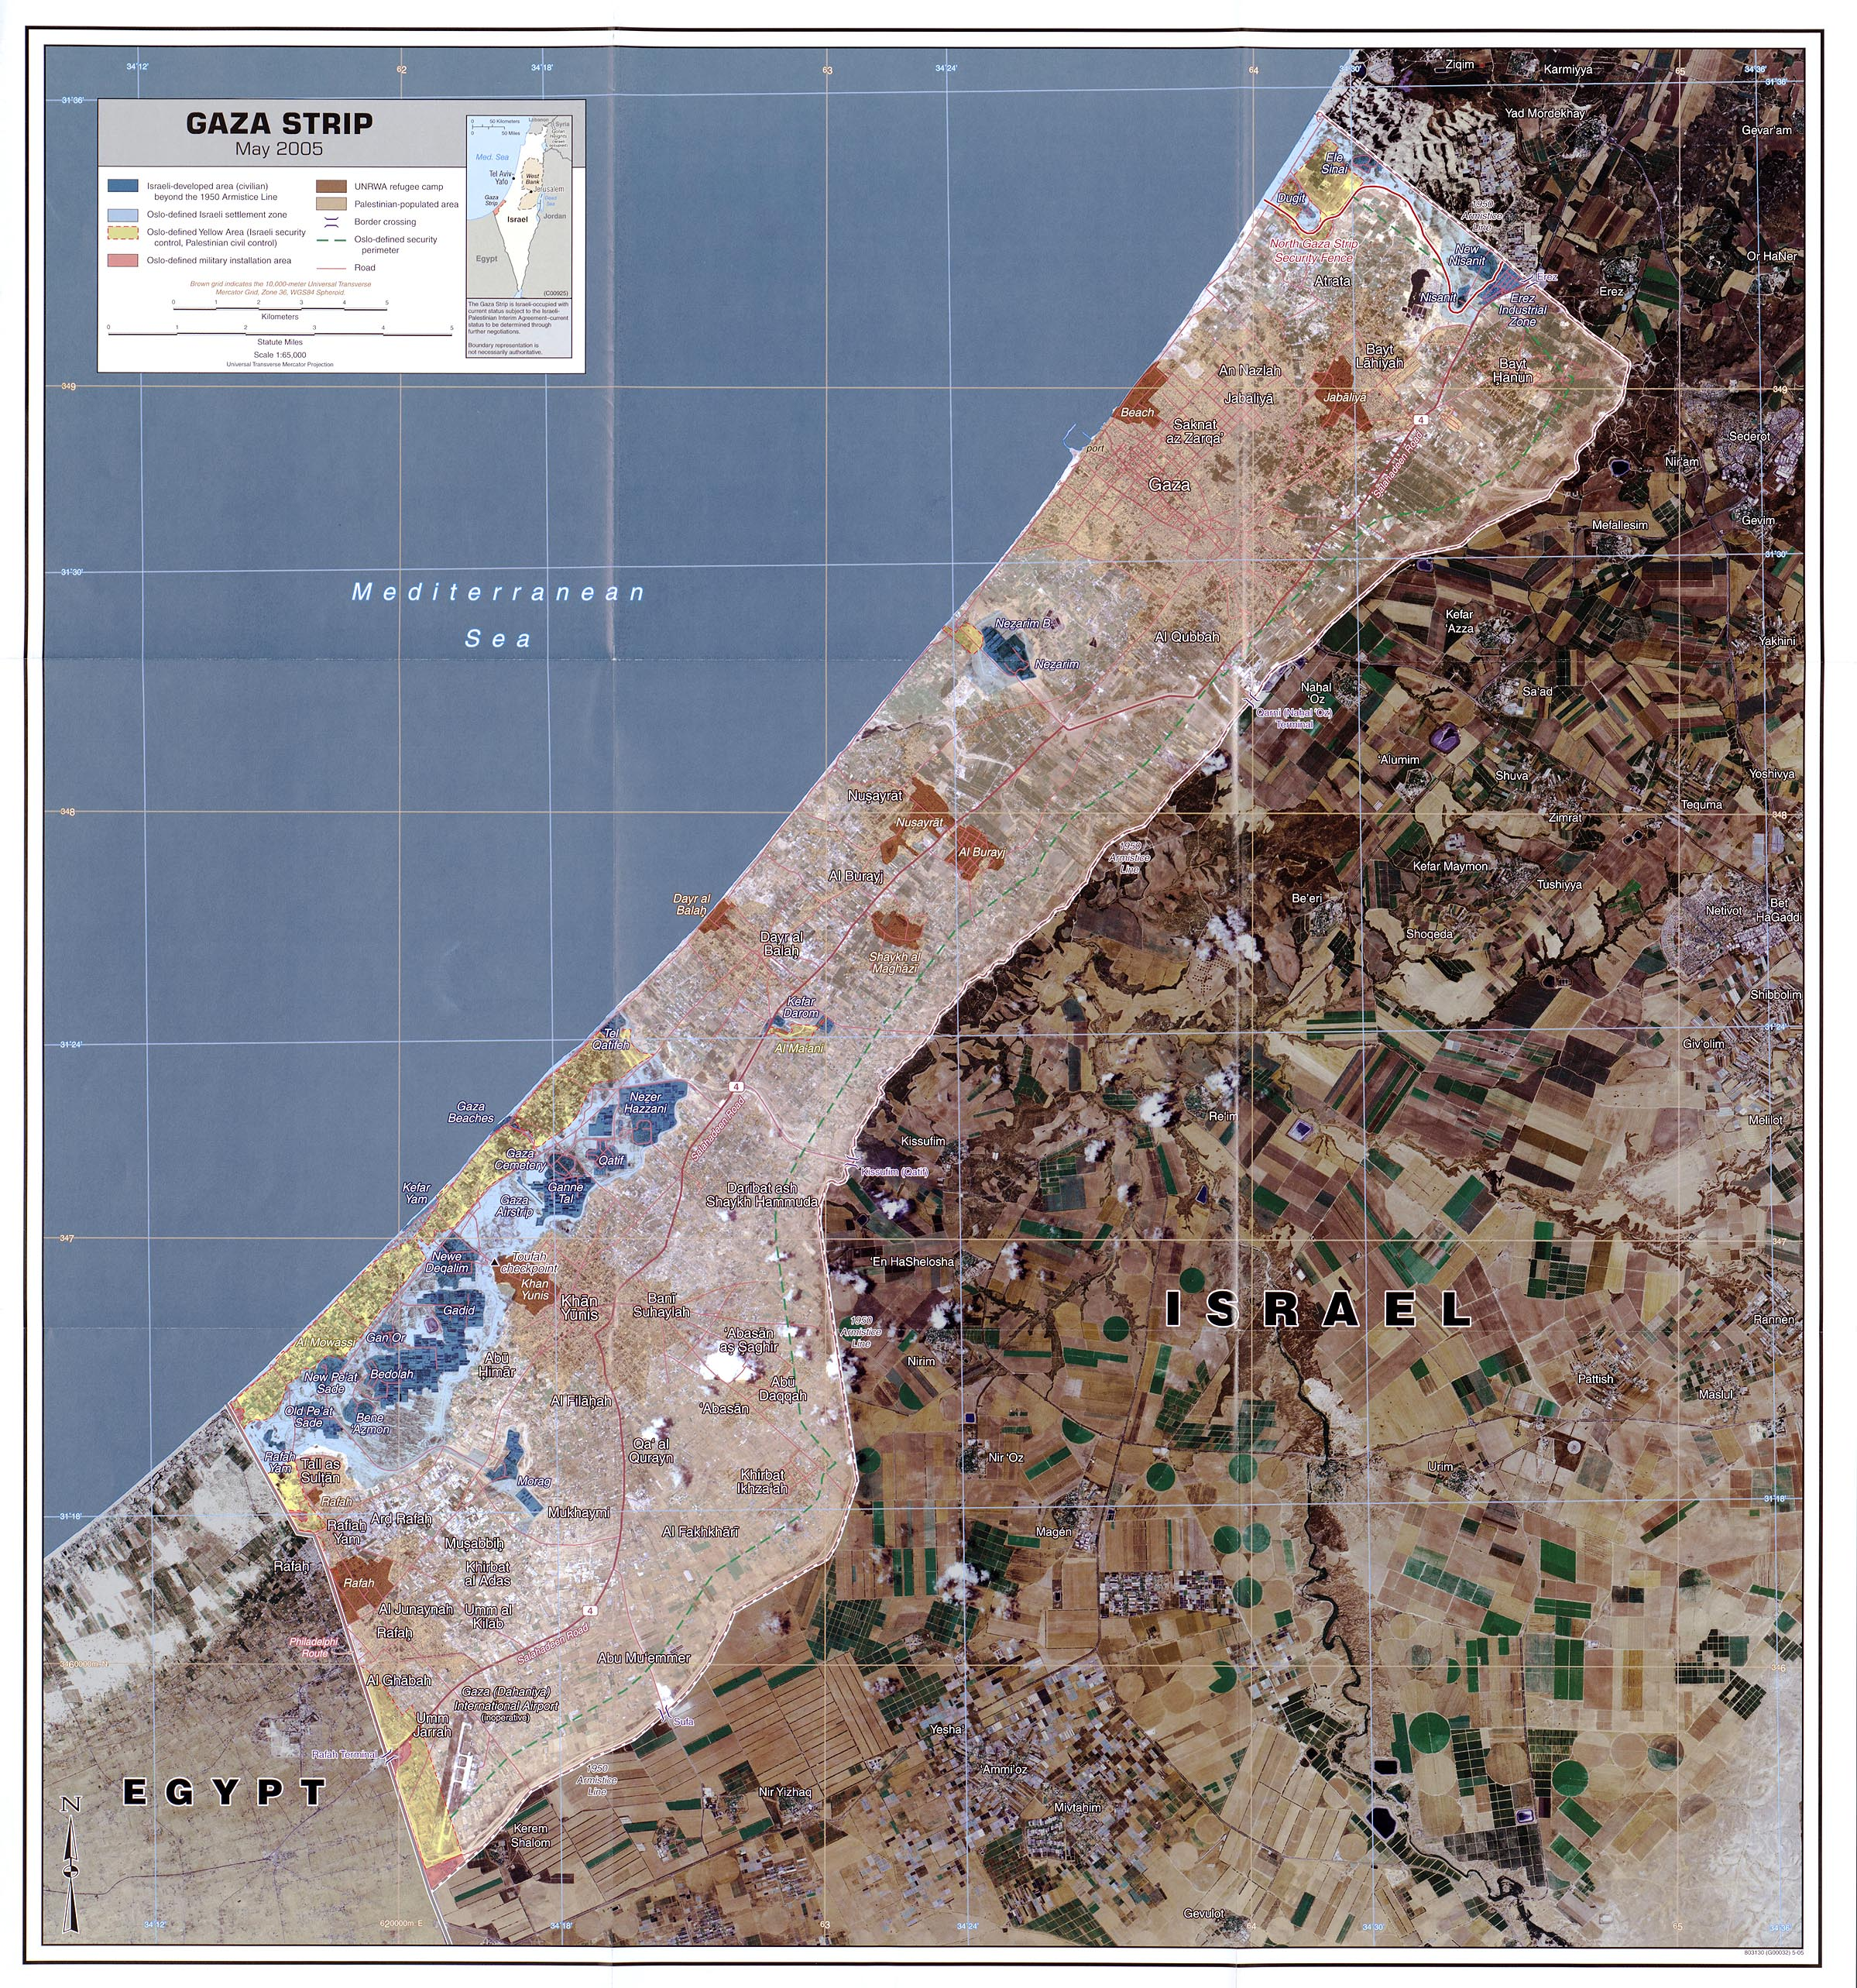 West Bank and Gaza Maps - Perry-Castañeda Map Collection ... Gaza Strip Map on palestinian people, sea of galilee, oman map, tel aviv, plateau of iran map, yasser arafat, himalayas map, palestinian territories, east jerusalem, bangladesh map, greece map, united kingdom map, world map, jordan river, morocco map, middle east political map, west bank, six-day war, western sahara map, indonesia map, sinai peninsula map, ethiopia map, iberian peninsula map, yom kippur war, austria map, golan heights, iudaea province map, philippines map, jerusalem map, oslo accords, yemen map, sinai peninsula, western wall, portugal map,